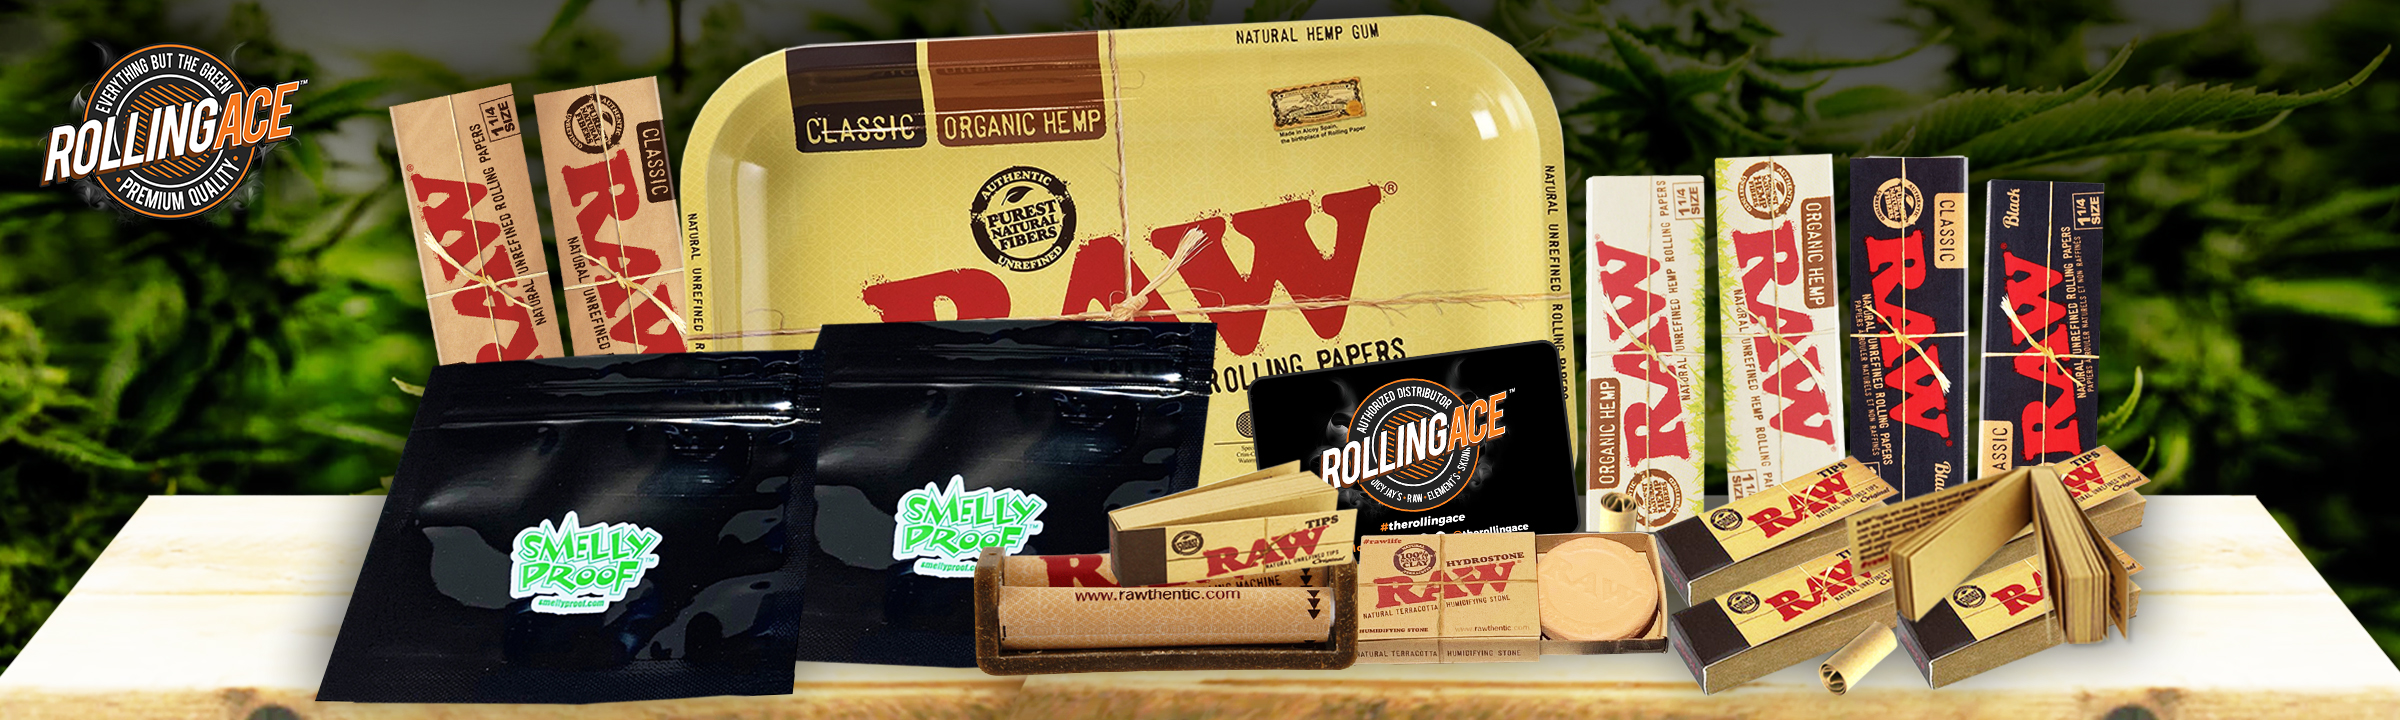 Raw 1 1/4 Taster Rolling Papers Starter Bundle